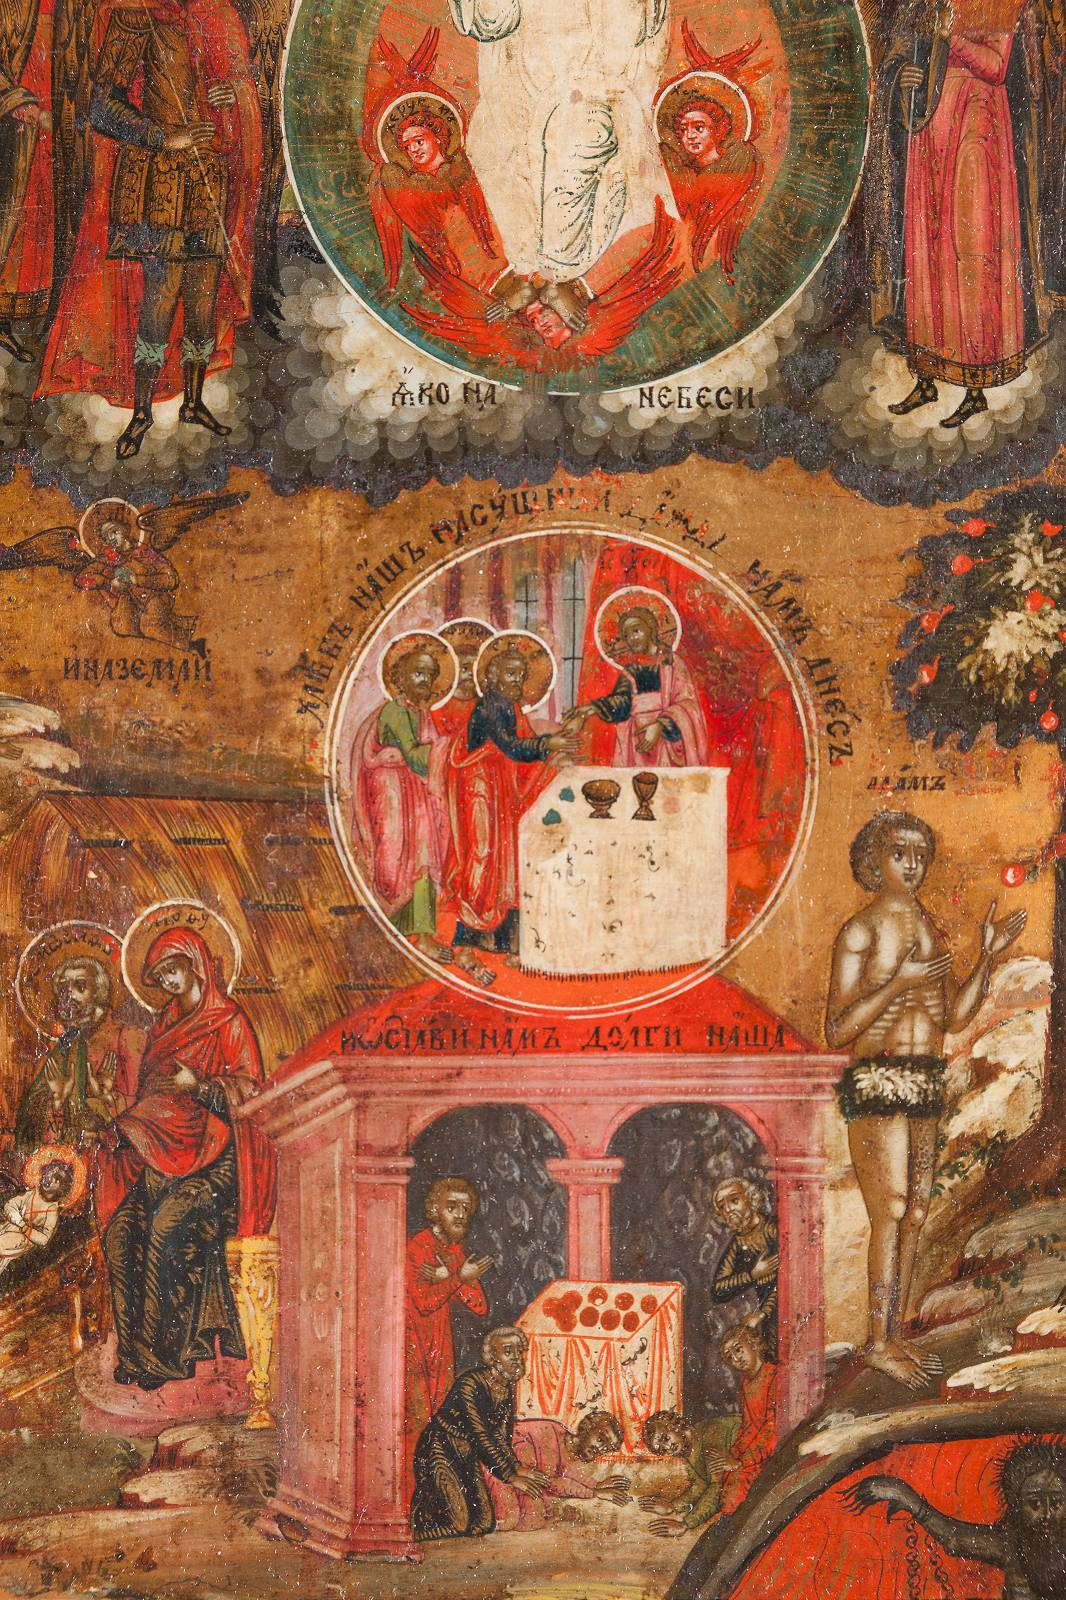 A VERY RARE ICON: A VISUAL REPRESENTATION OF THE LORD'S PRAYER 'OUR FATHER'Russian, circa 1800 - Image 4 of 6